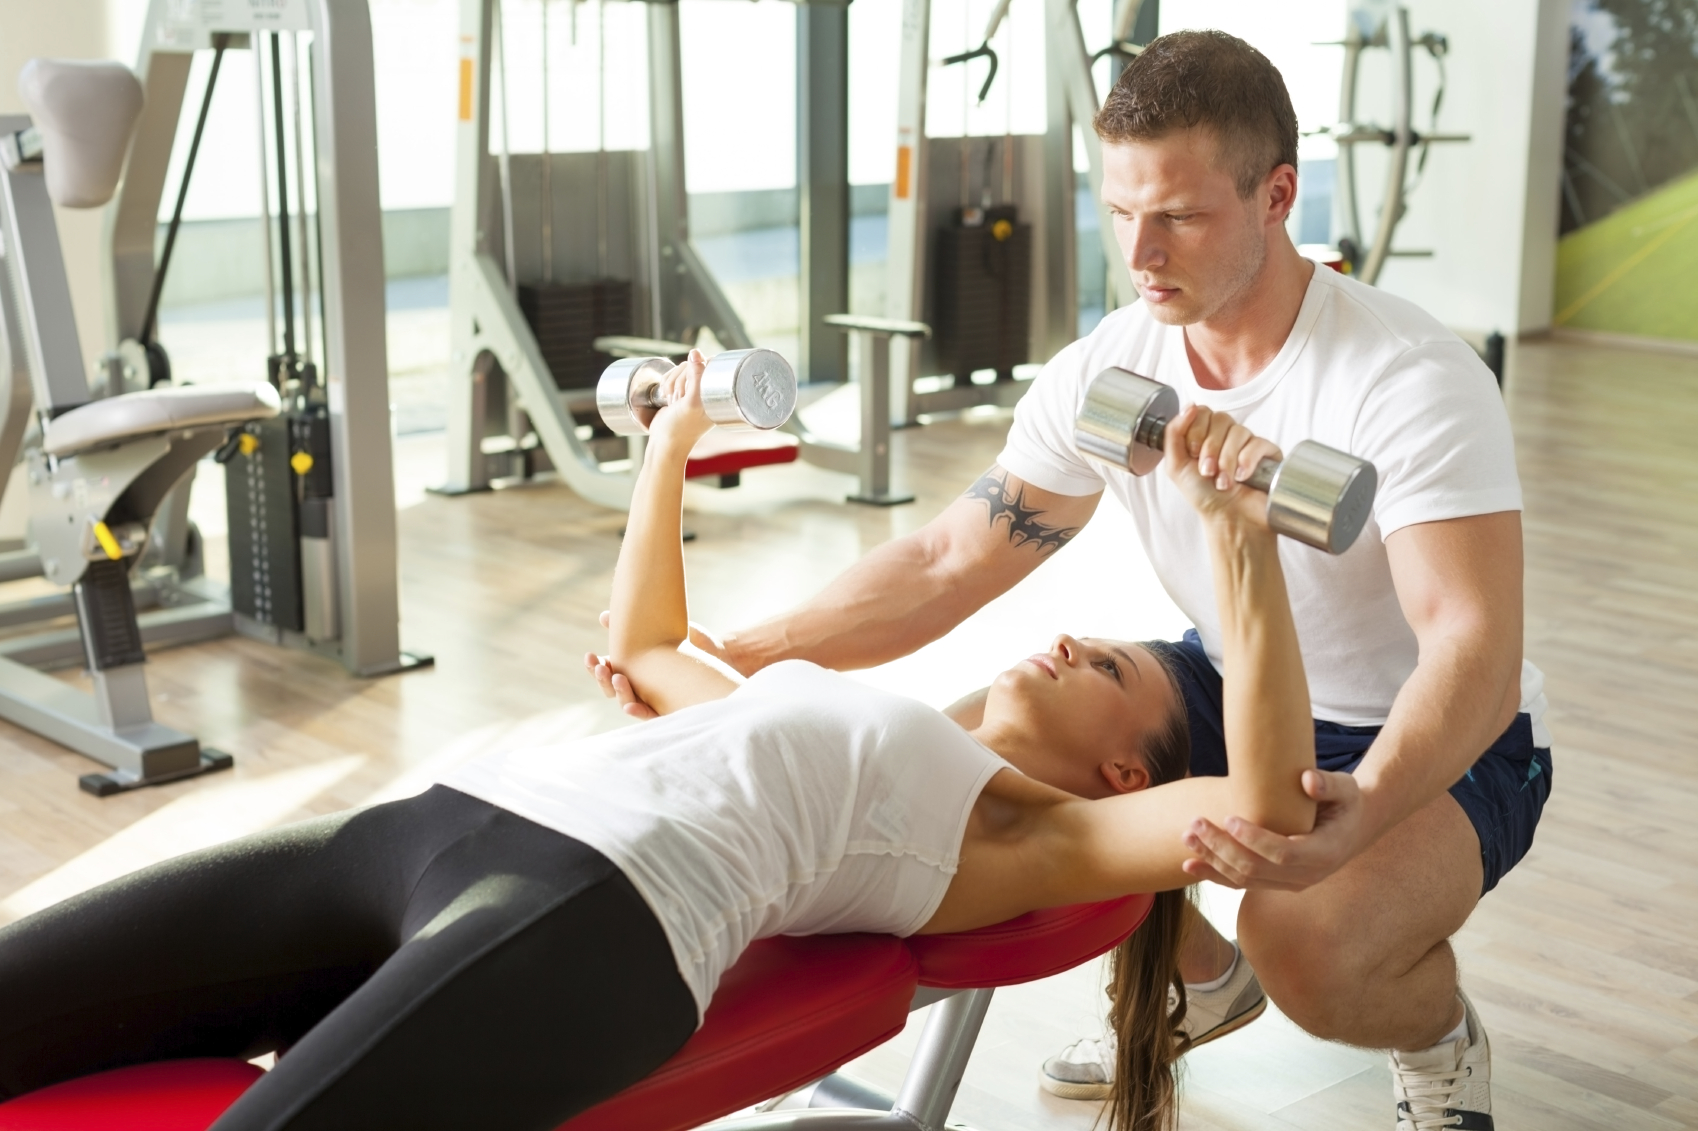 Takes fitness nashville gym personal training